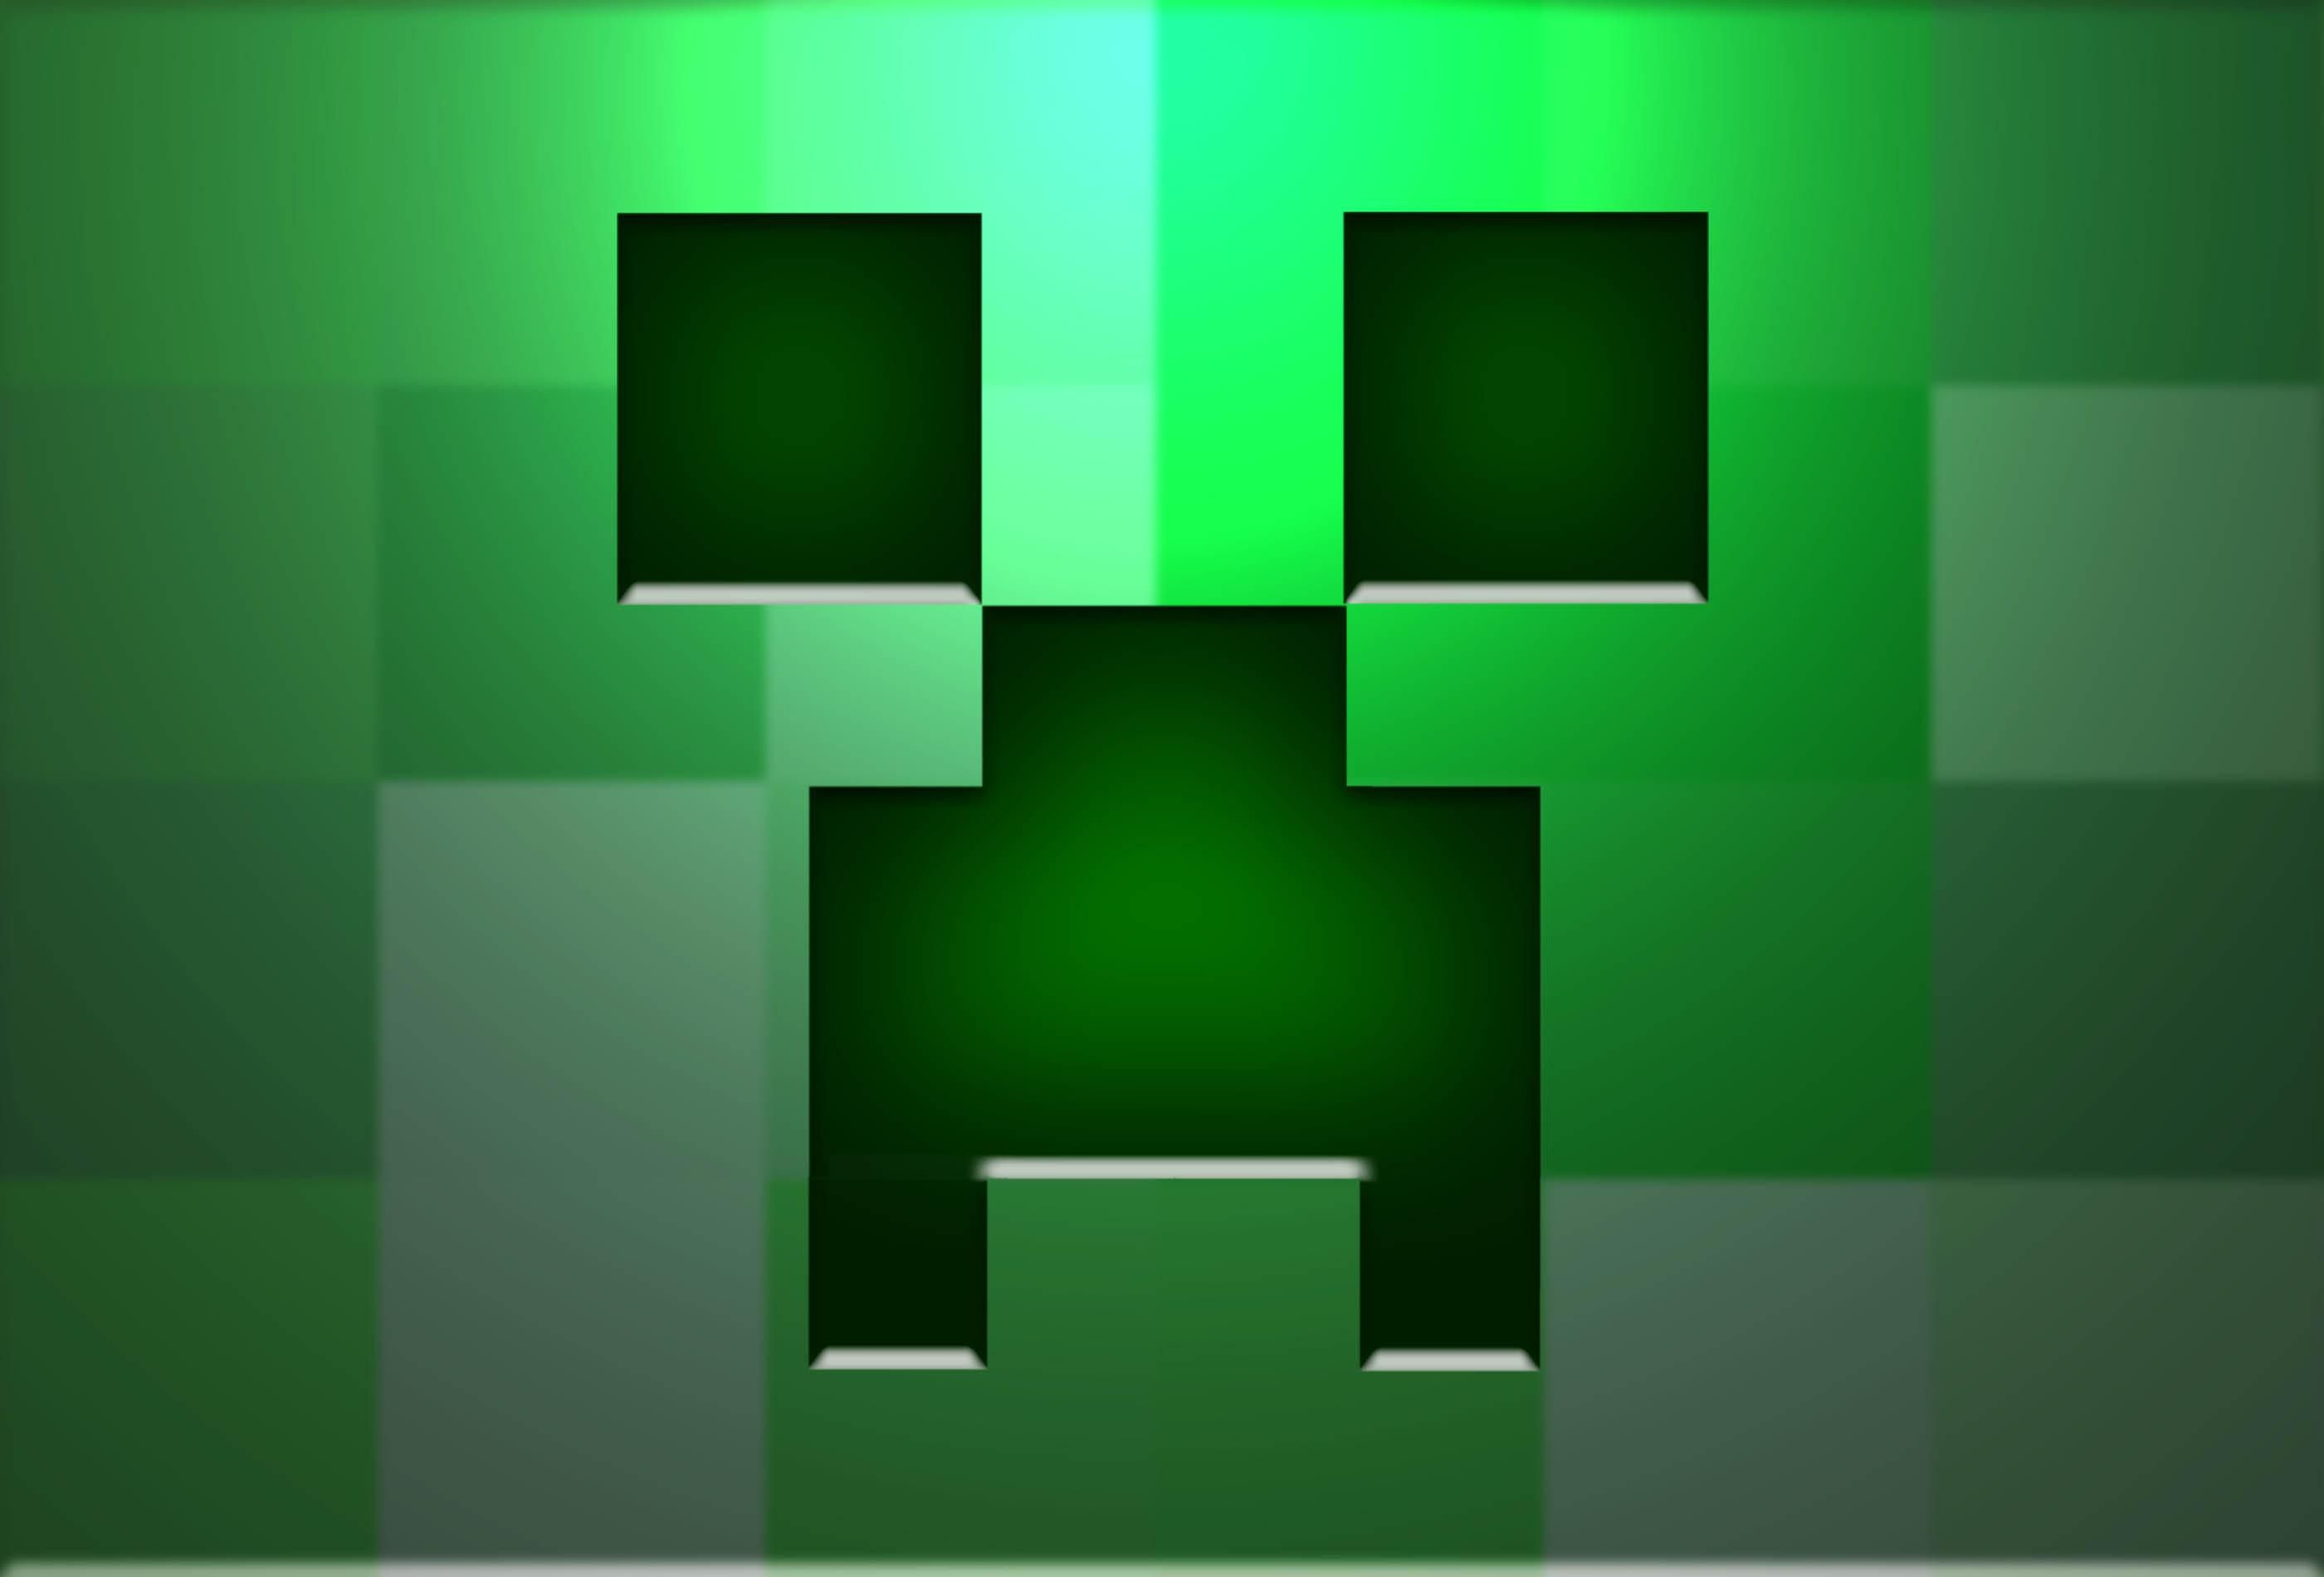 Minecraft Creeper Backgrounds  Wallpaper anime 2800x1900